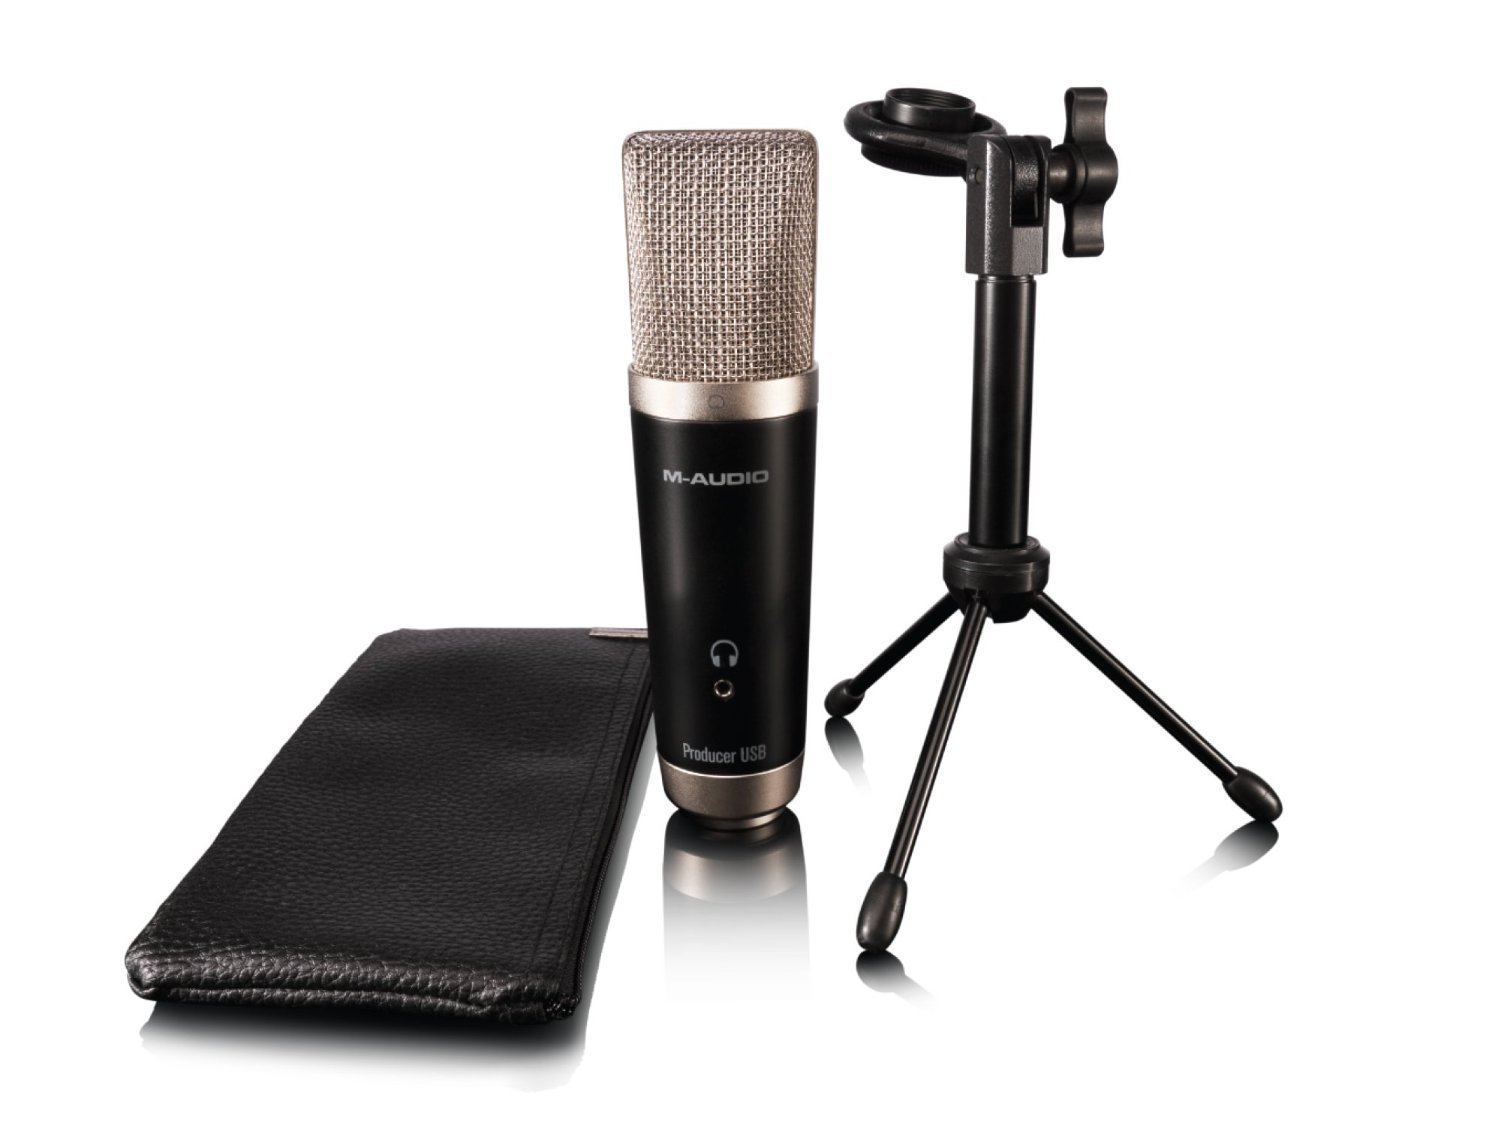 Best Budget Microphones for Podcasting - M-Audio USB Condenser Microphone